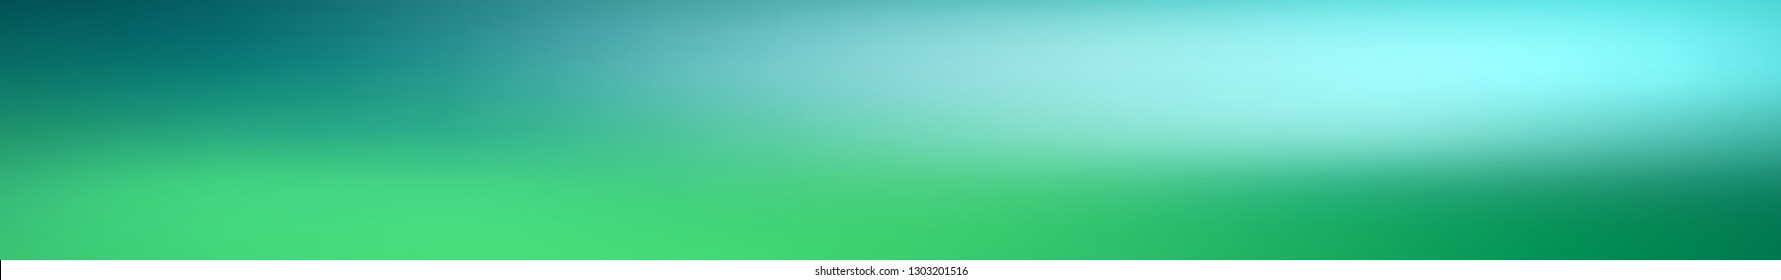 Panoramic abstract green blurred gradient background.  Horizontal view for a glass panels - skinali. Trendy modern nature backdrop. Ecology concept for your graphic design.